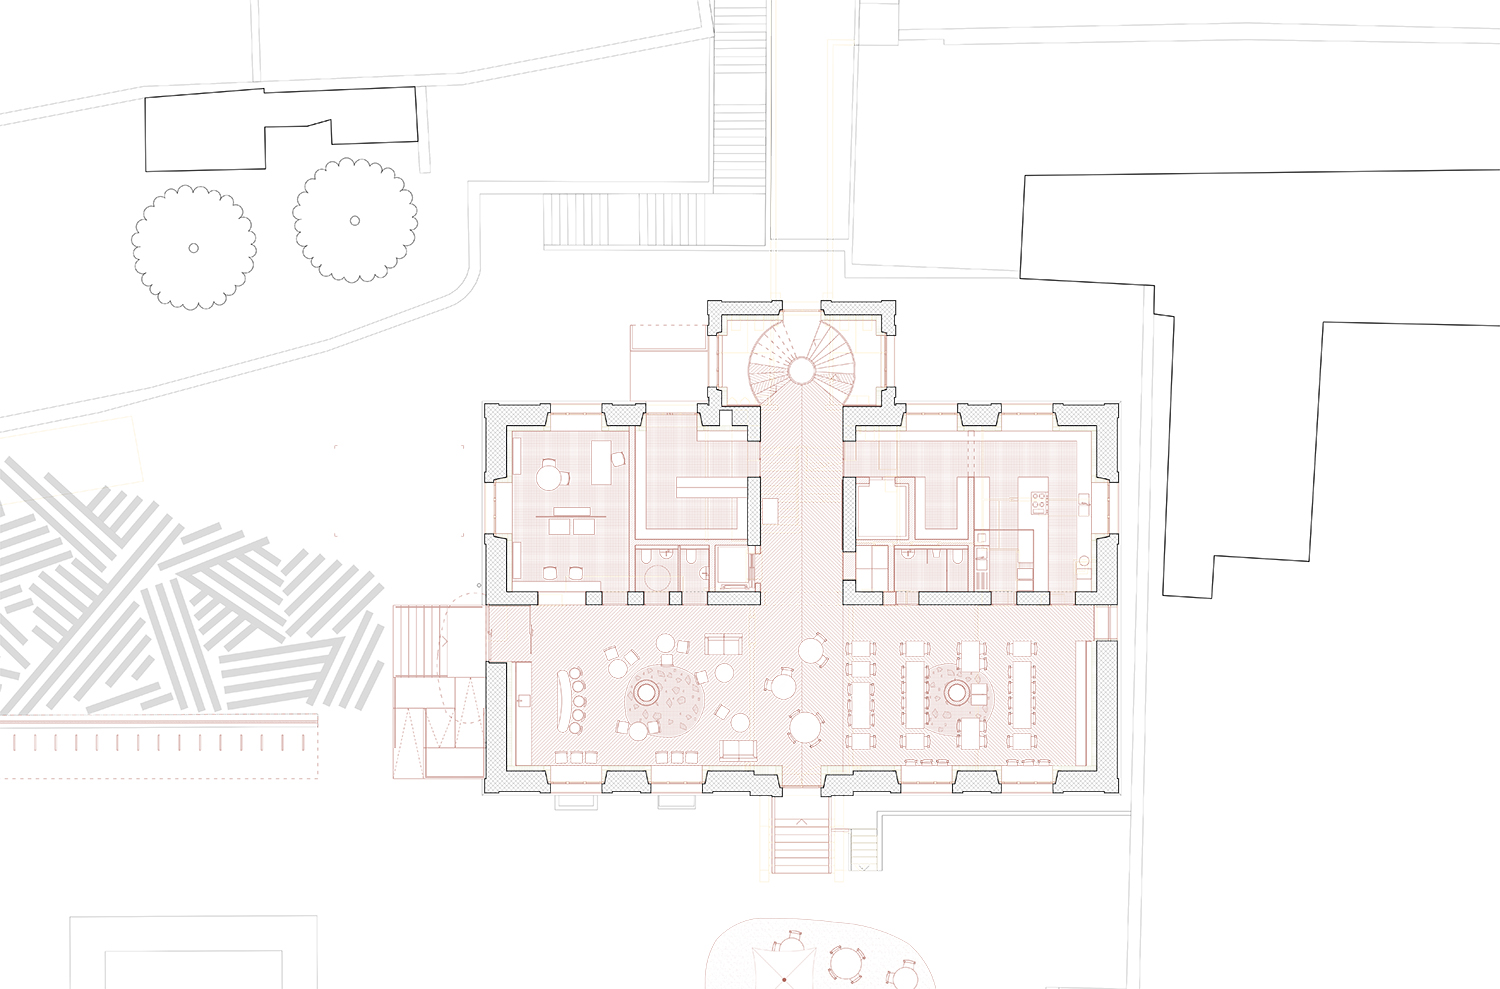 plan-ground-floor-hostel-neuchatel-coci.jpg